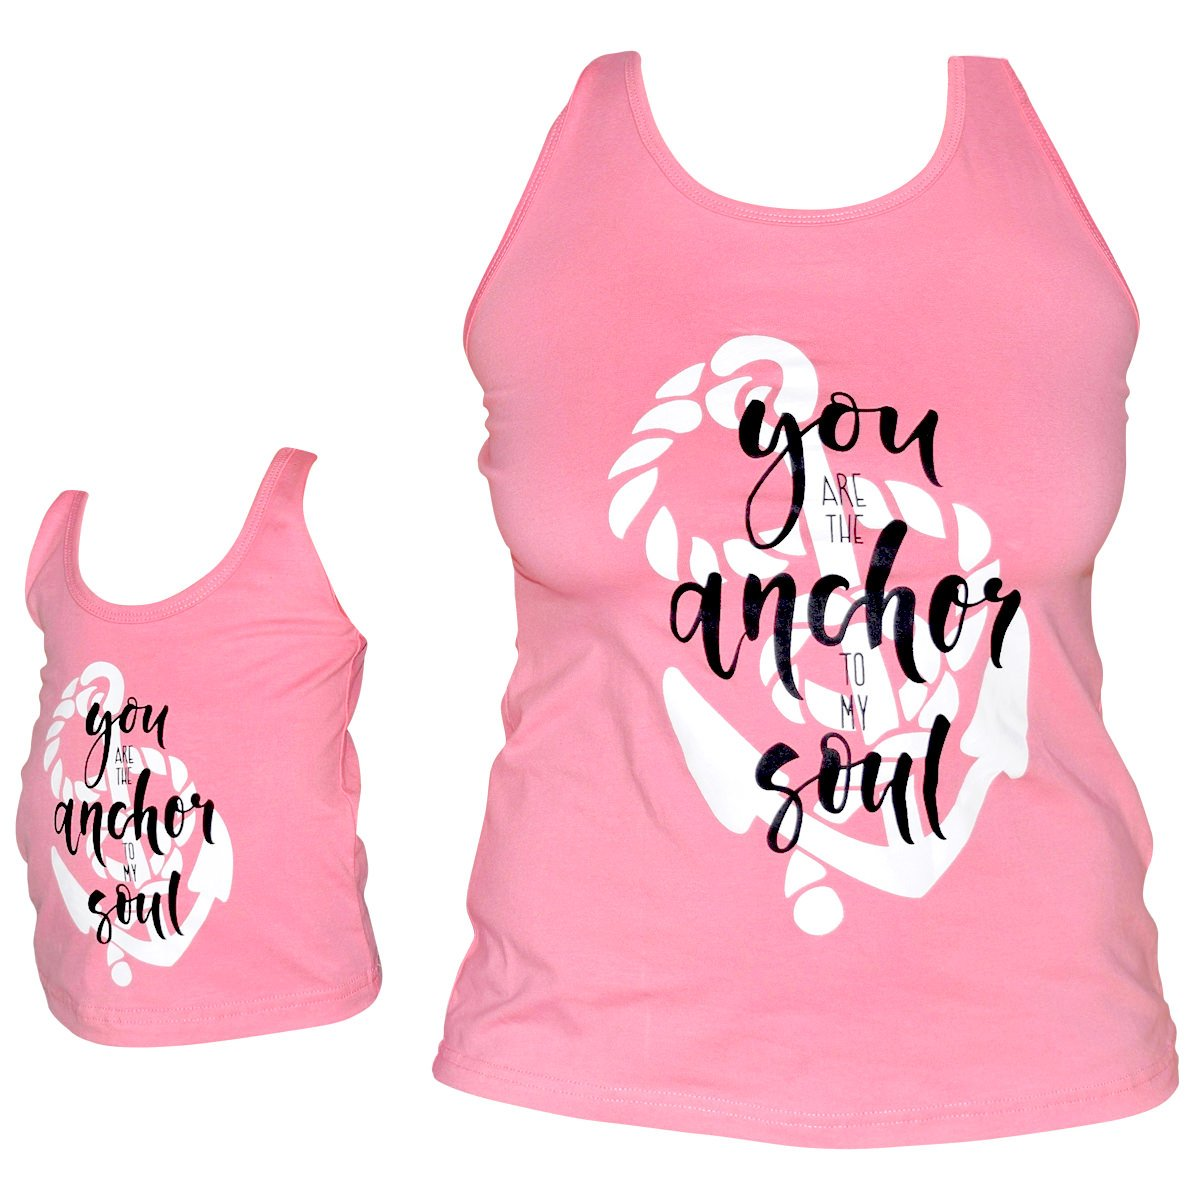 Unique Baby Girls Mommy & Me Racerback Anchor Tank Tops (7/XXL, Pink)